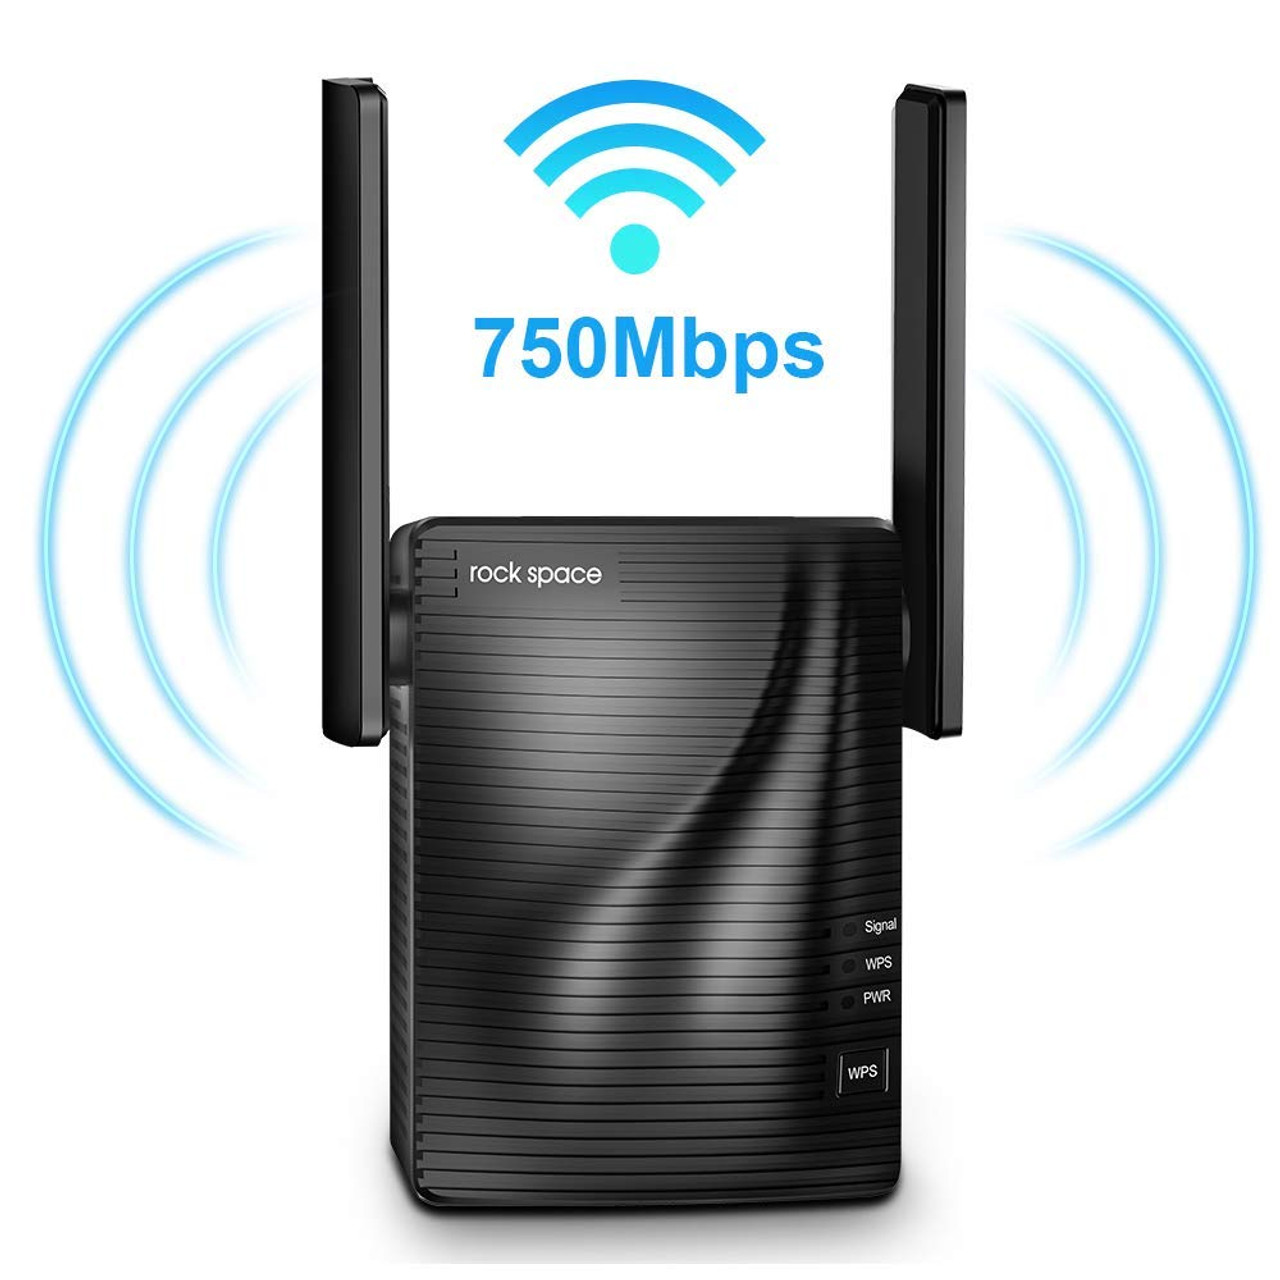 ROCK SPACE 750Mbps Wireless Signal Booster, 2 4 & 5GHz Dual Band Wi-Fi  Extender with Gigabit Ethernet Port, 360 Degree Full Coverage Wi-Fi Range